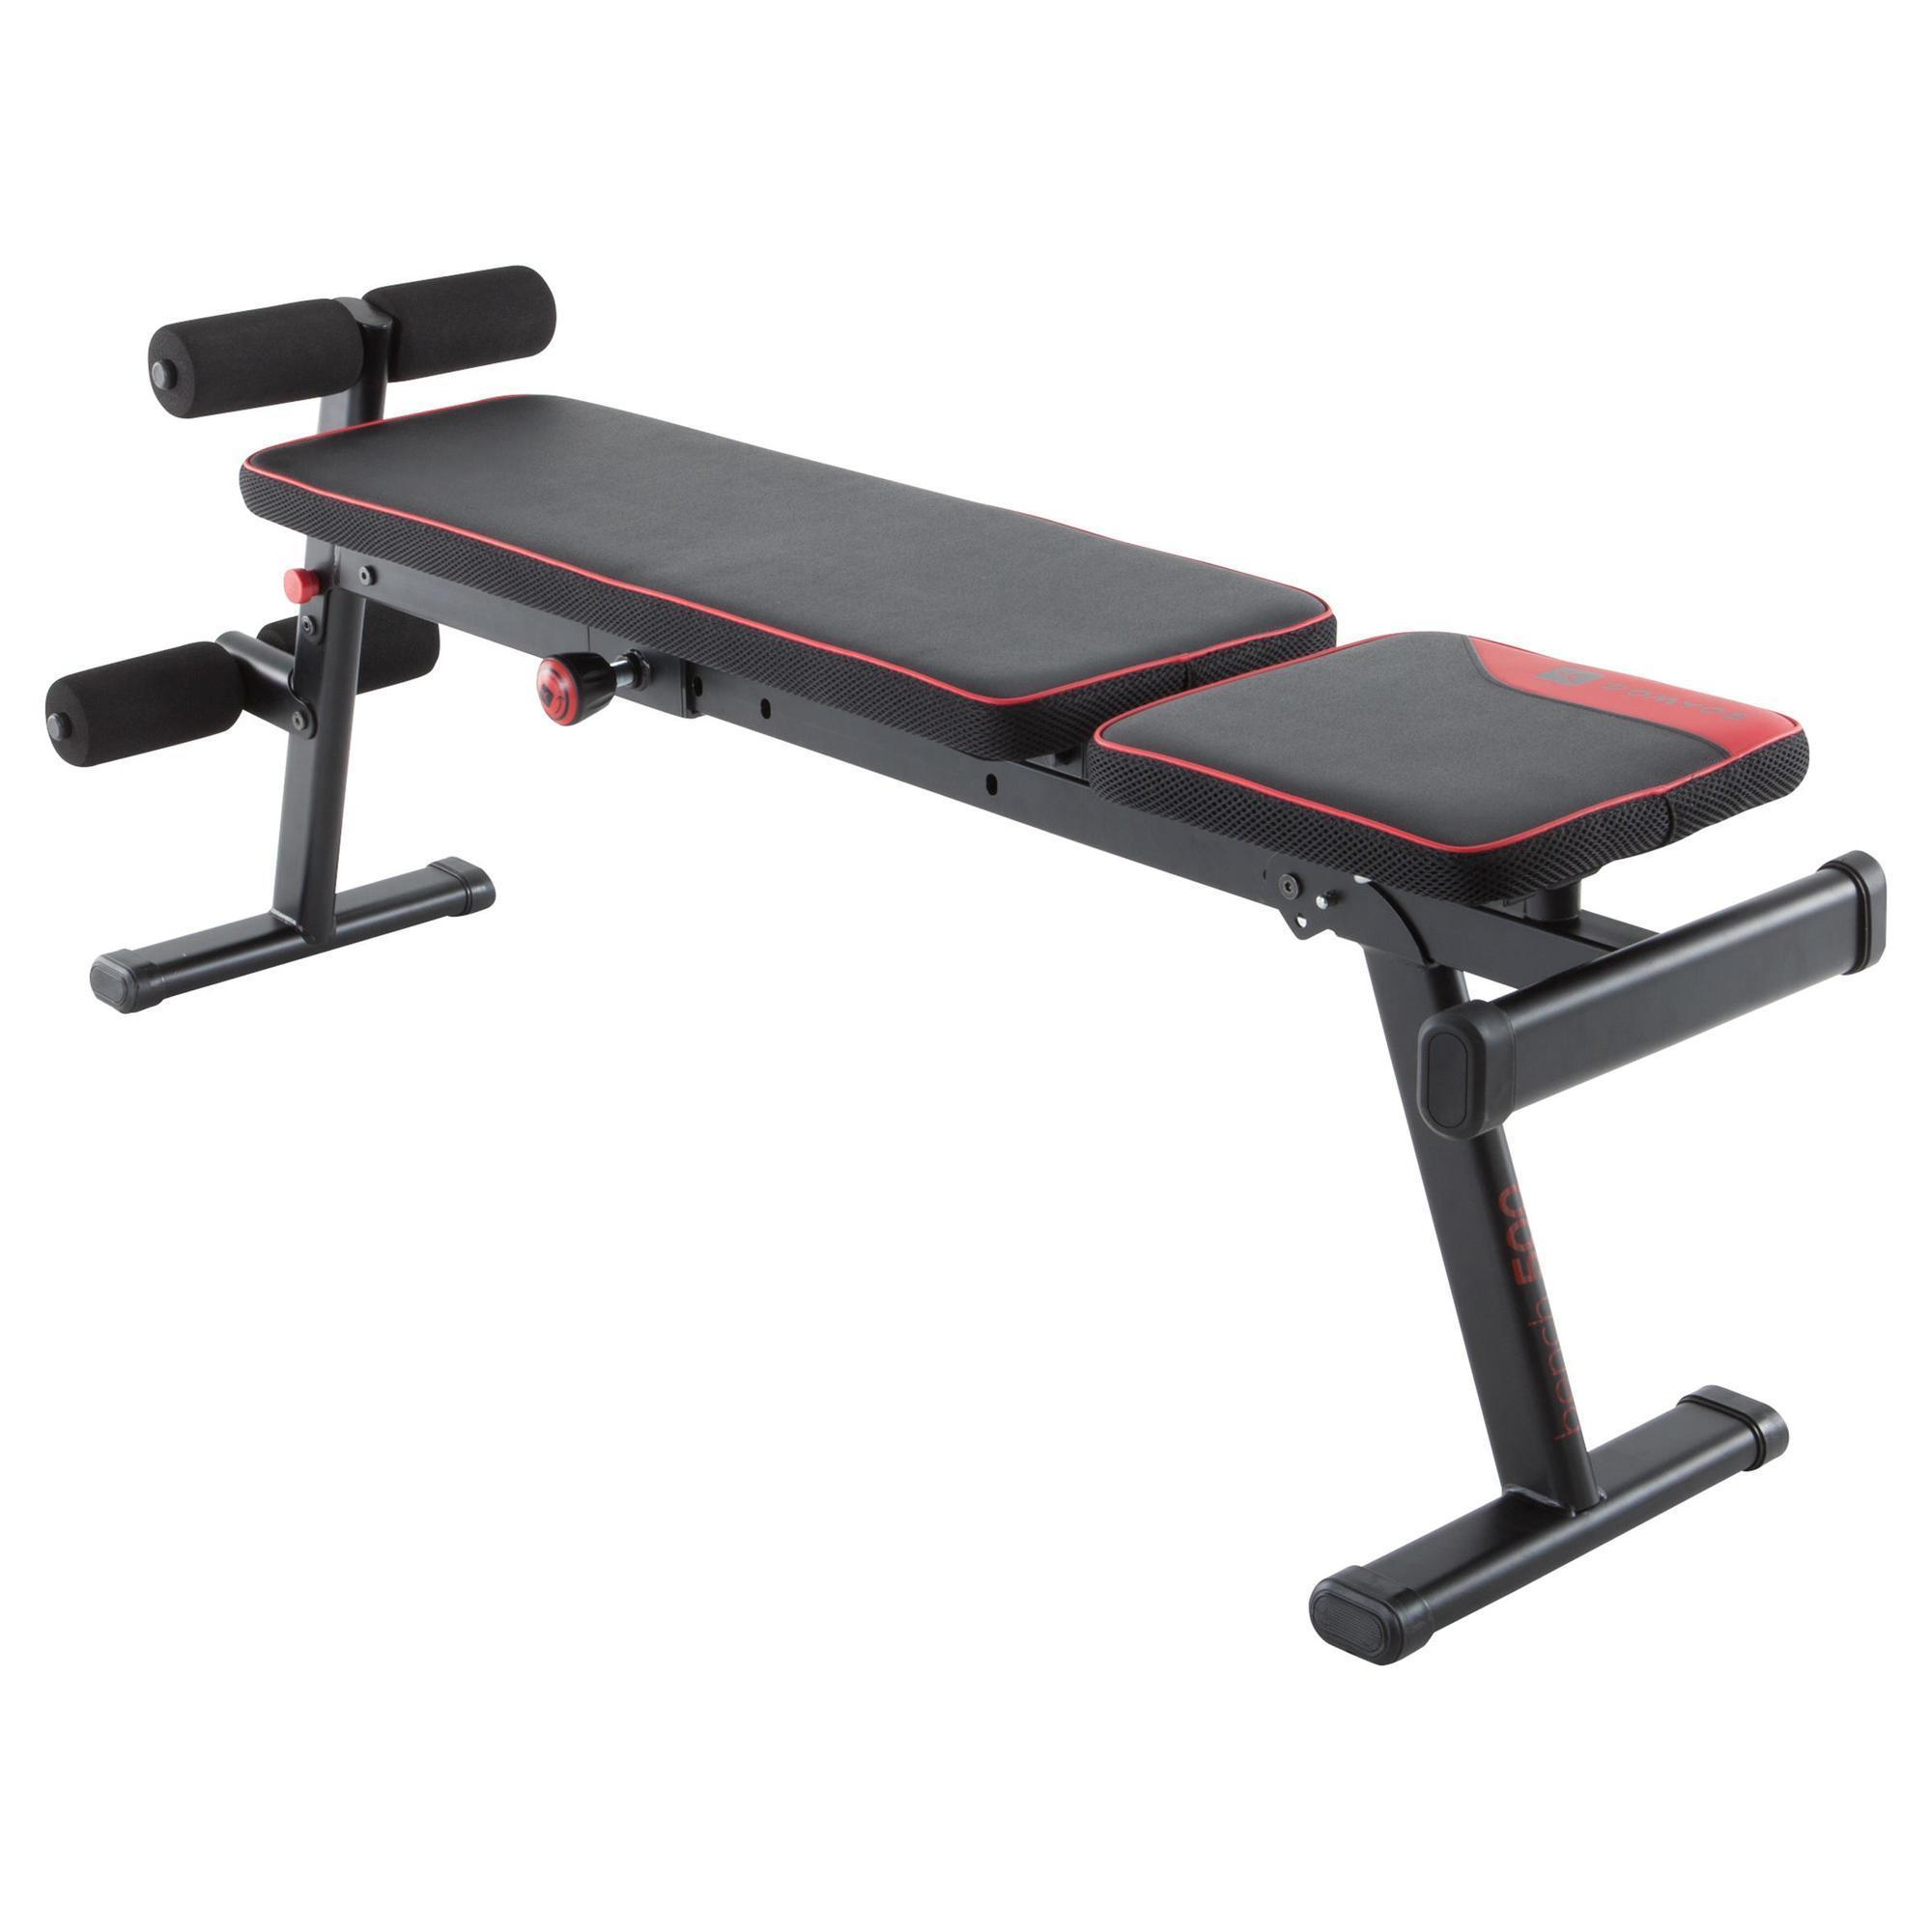 training itm s incline golds gold olympic gym lifting weight new workout bench station xrs